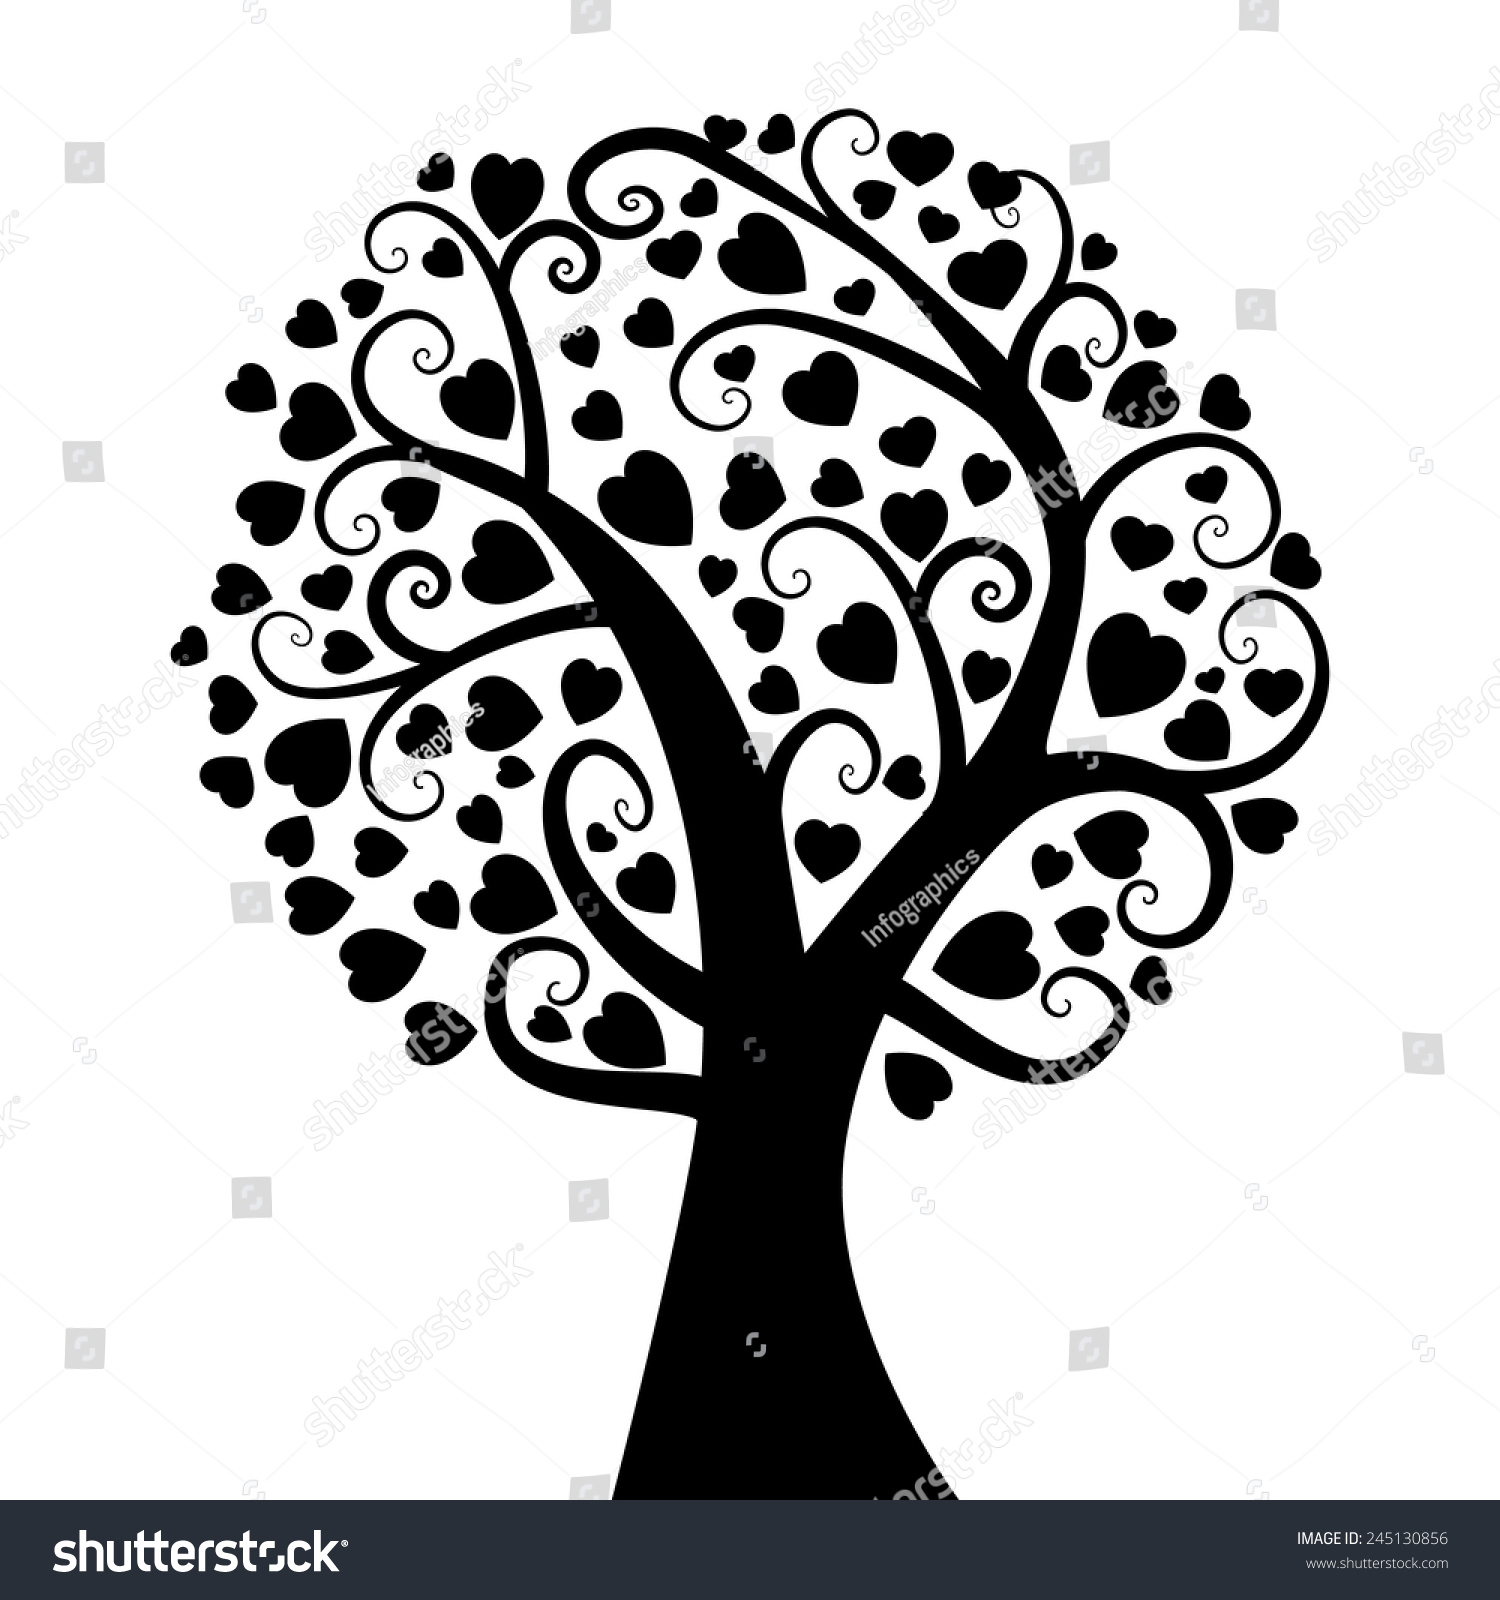 Wedding Tree Vector: Valentine'S Day Tree With Heart. Card, Love